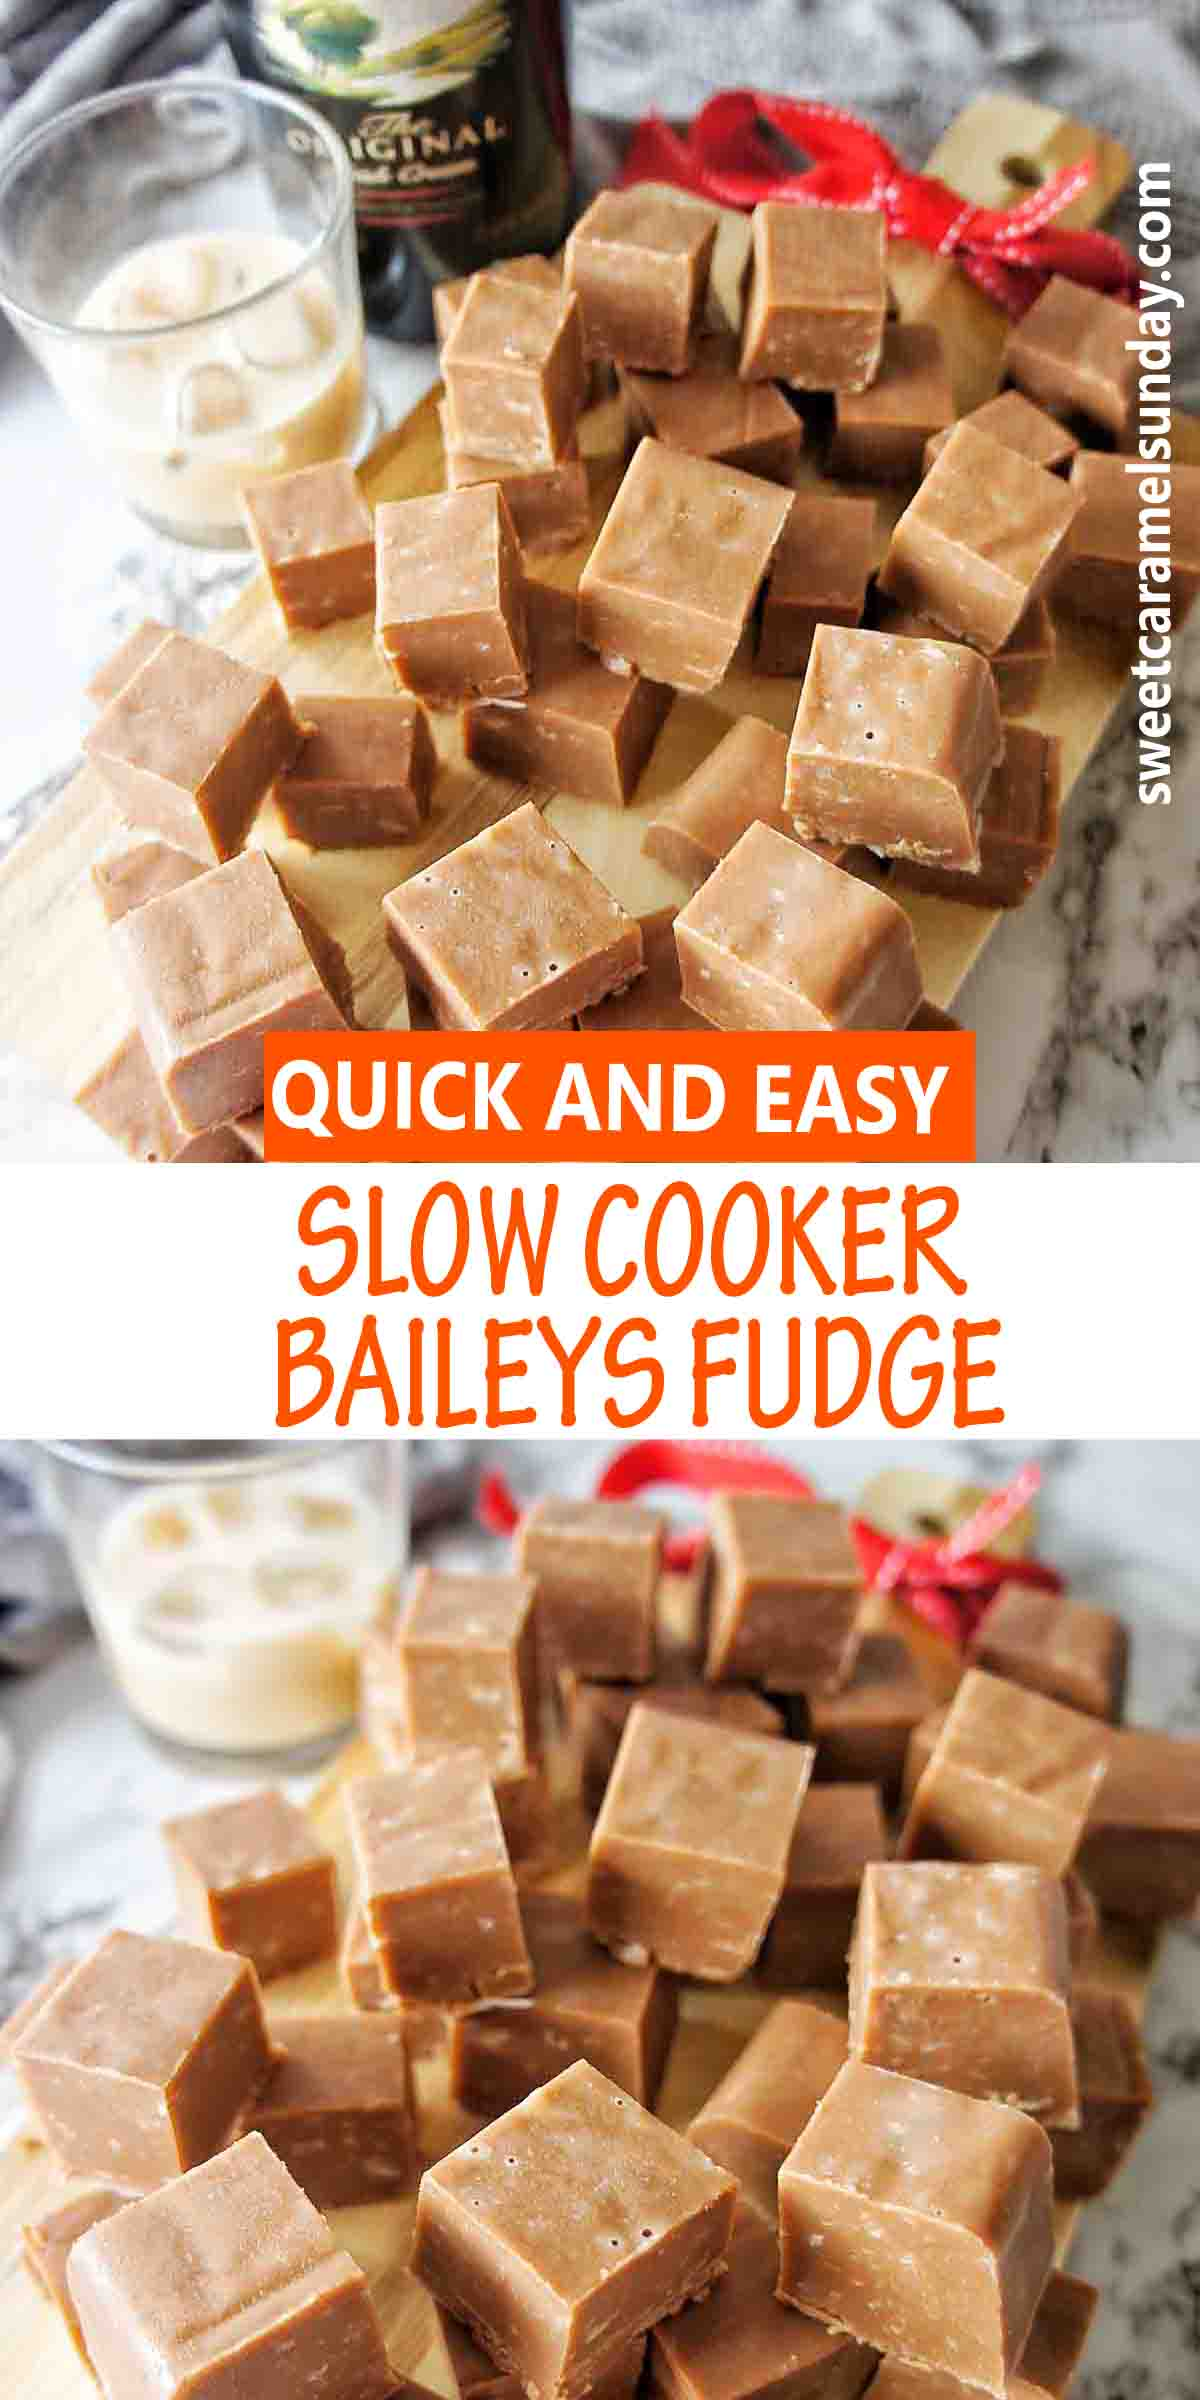 Slow Cooker Bailys Fudge with text over lay